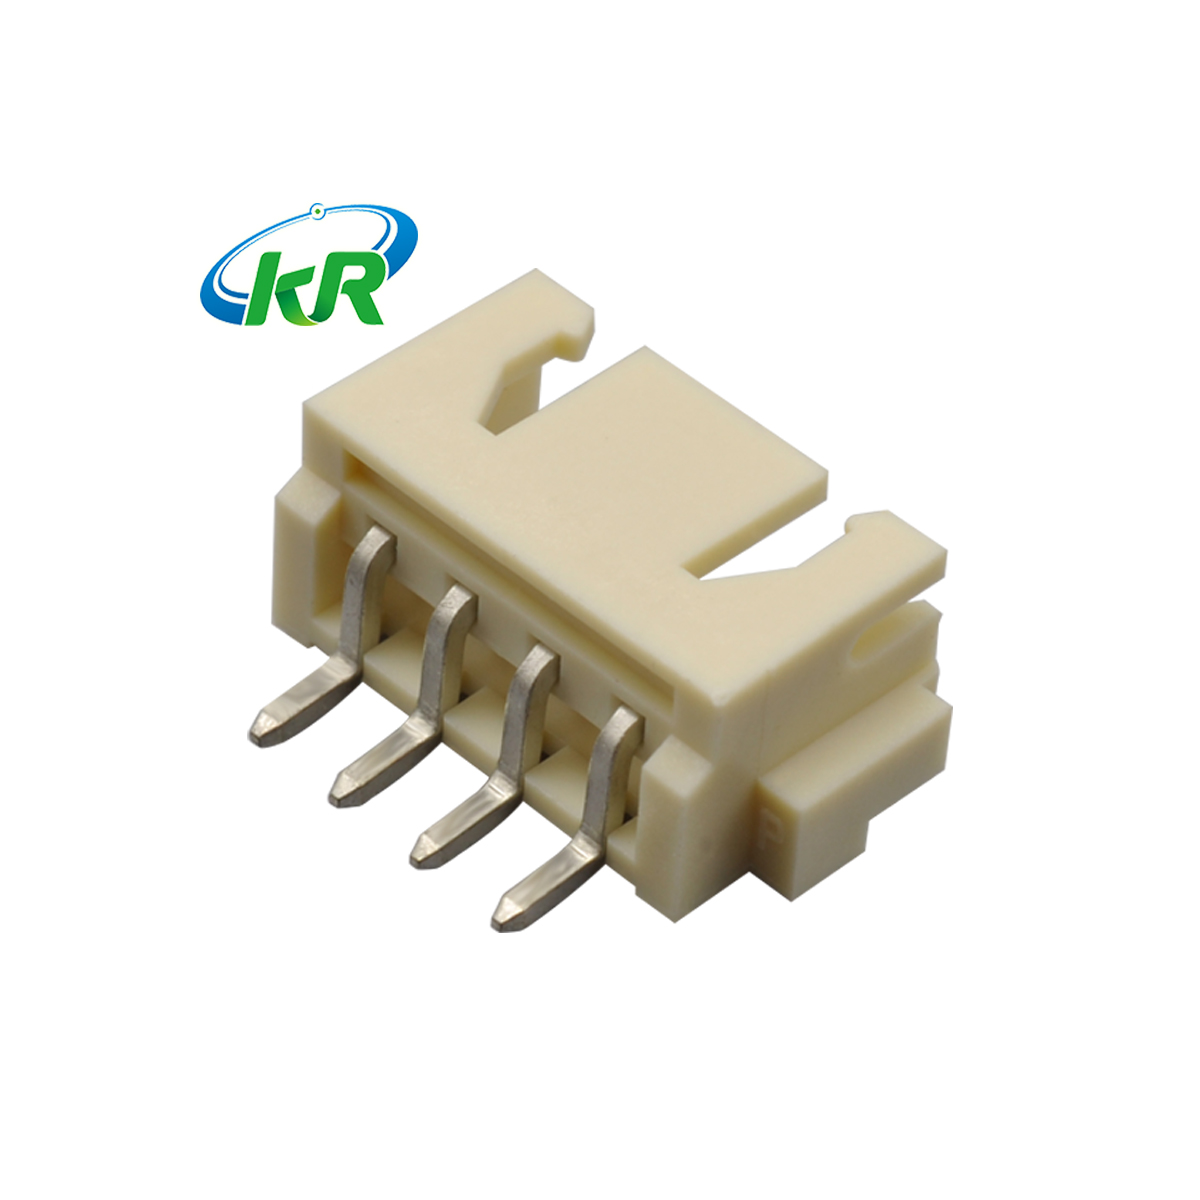 hight resolution of kr2501 ul approved xh2 54mm pcb pin header smd connectors wire harness connector